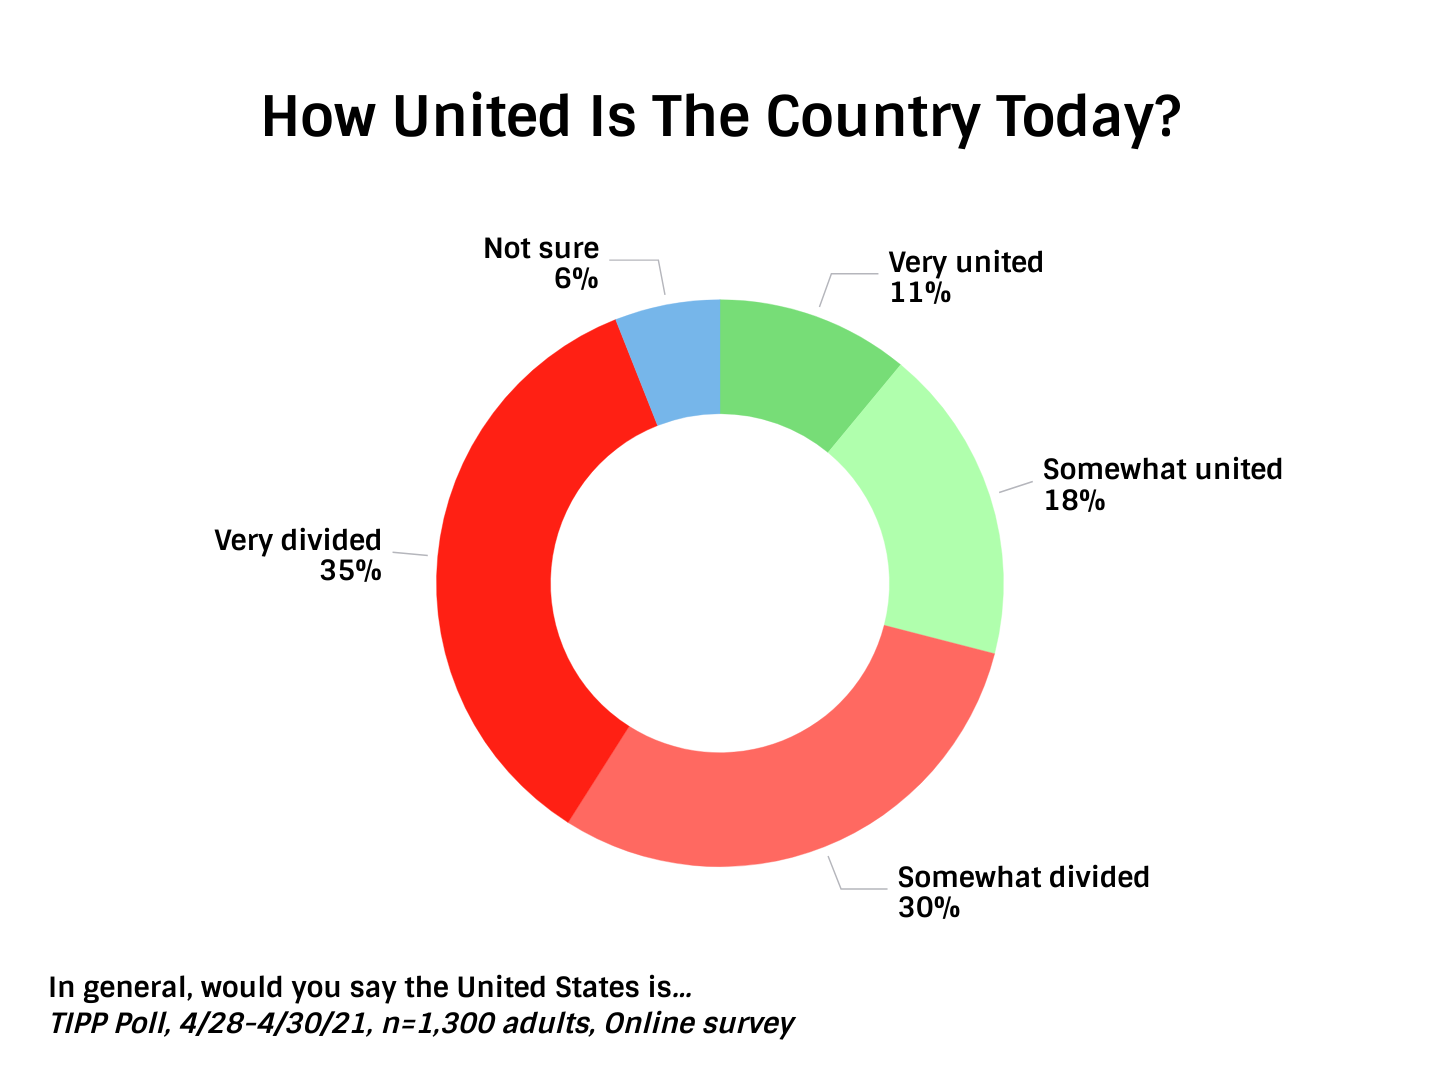 TIPP Unity Index Asking Americans How United They Think The Country Is Today in May 2021